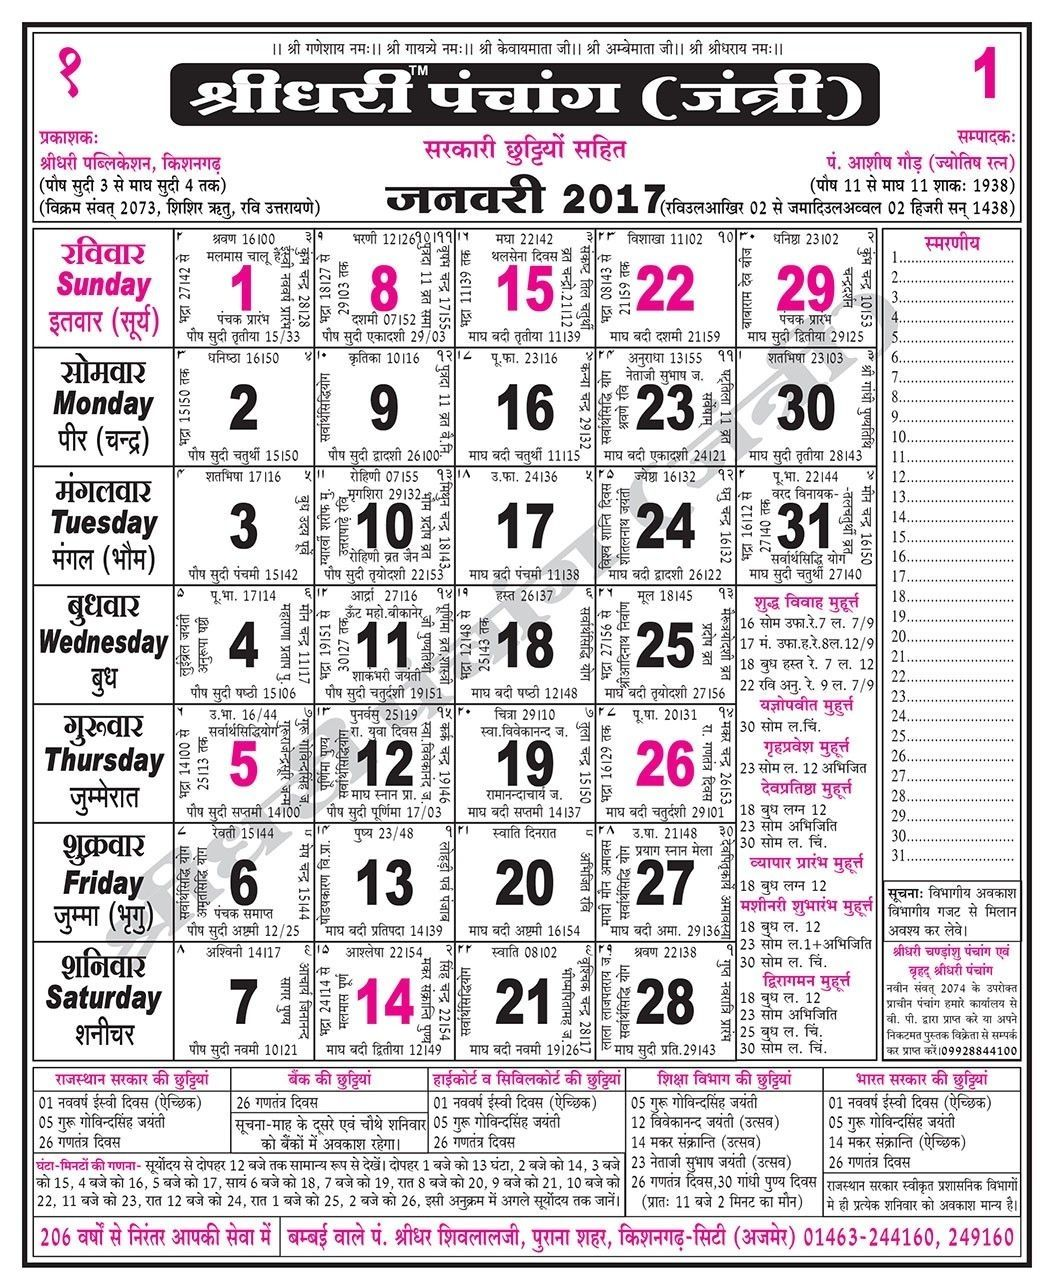 Indian Calendar In Hindi Octoberfestivals Indianfestival Octoberholiday Calendar March October Calendar November Calendar